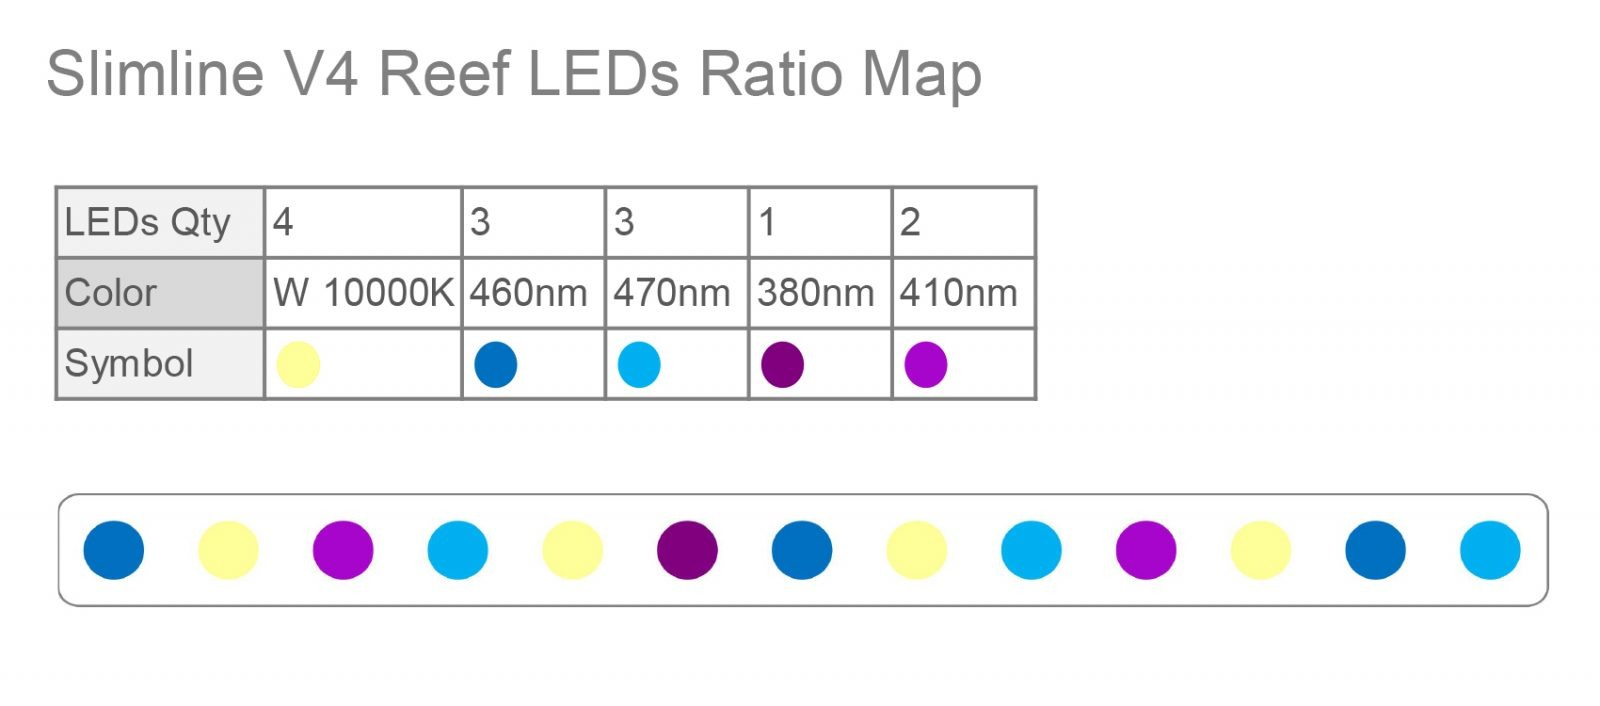 Slimline V4 LEDs reef ratio map 20170620 update (1)